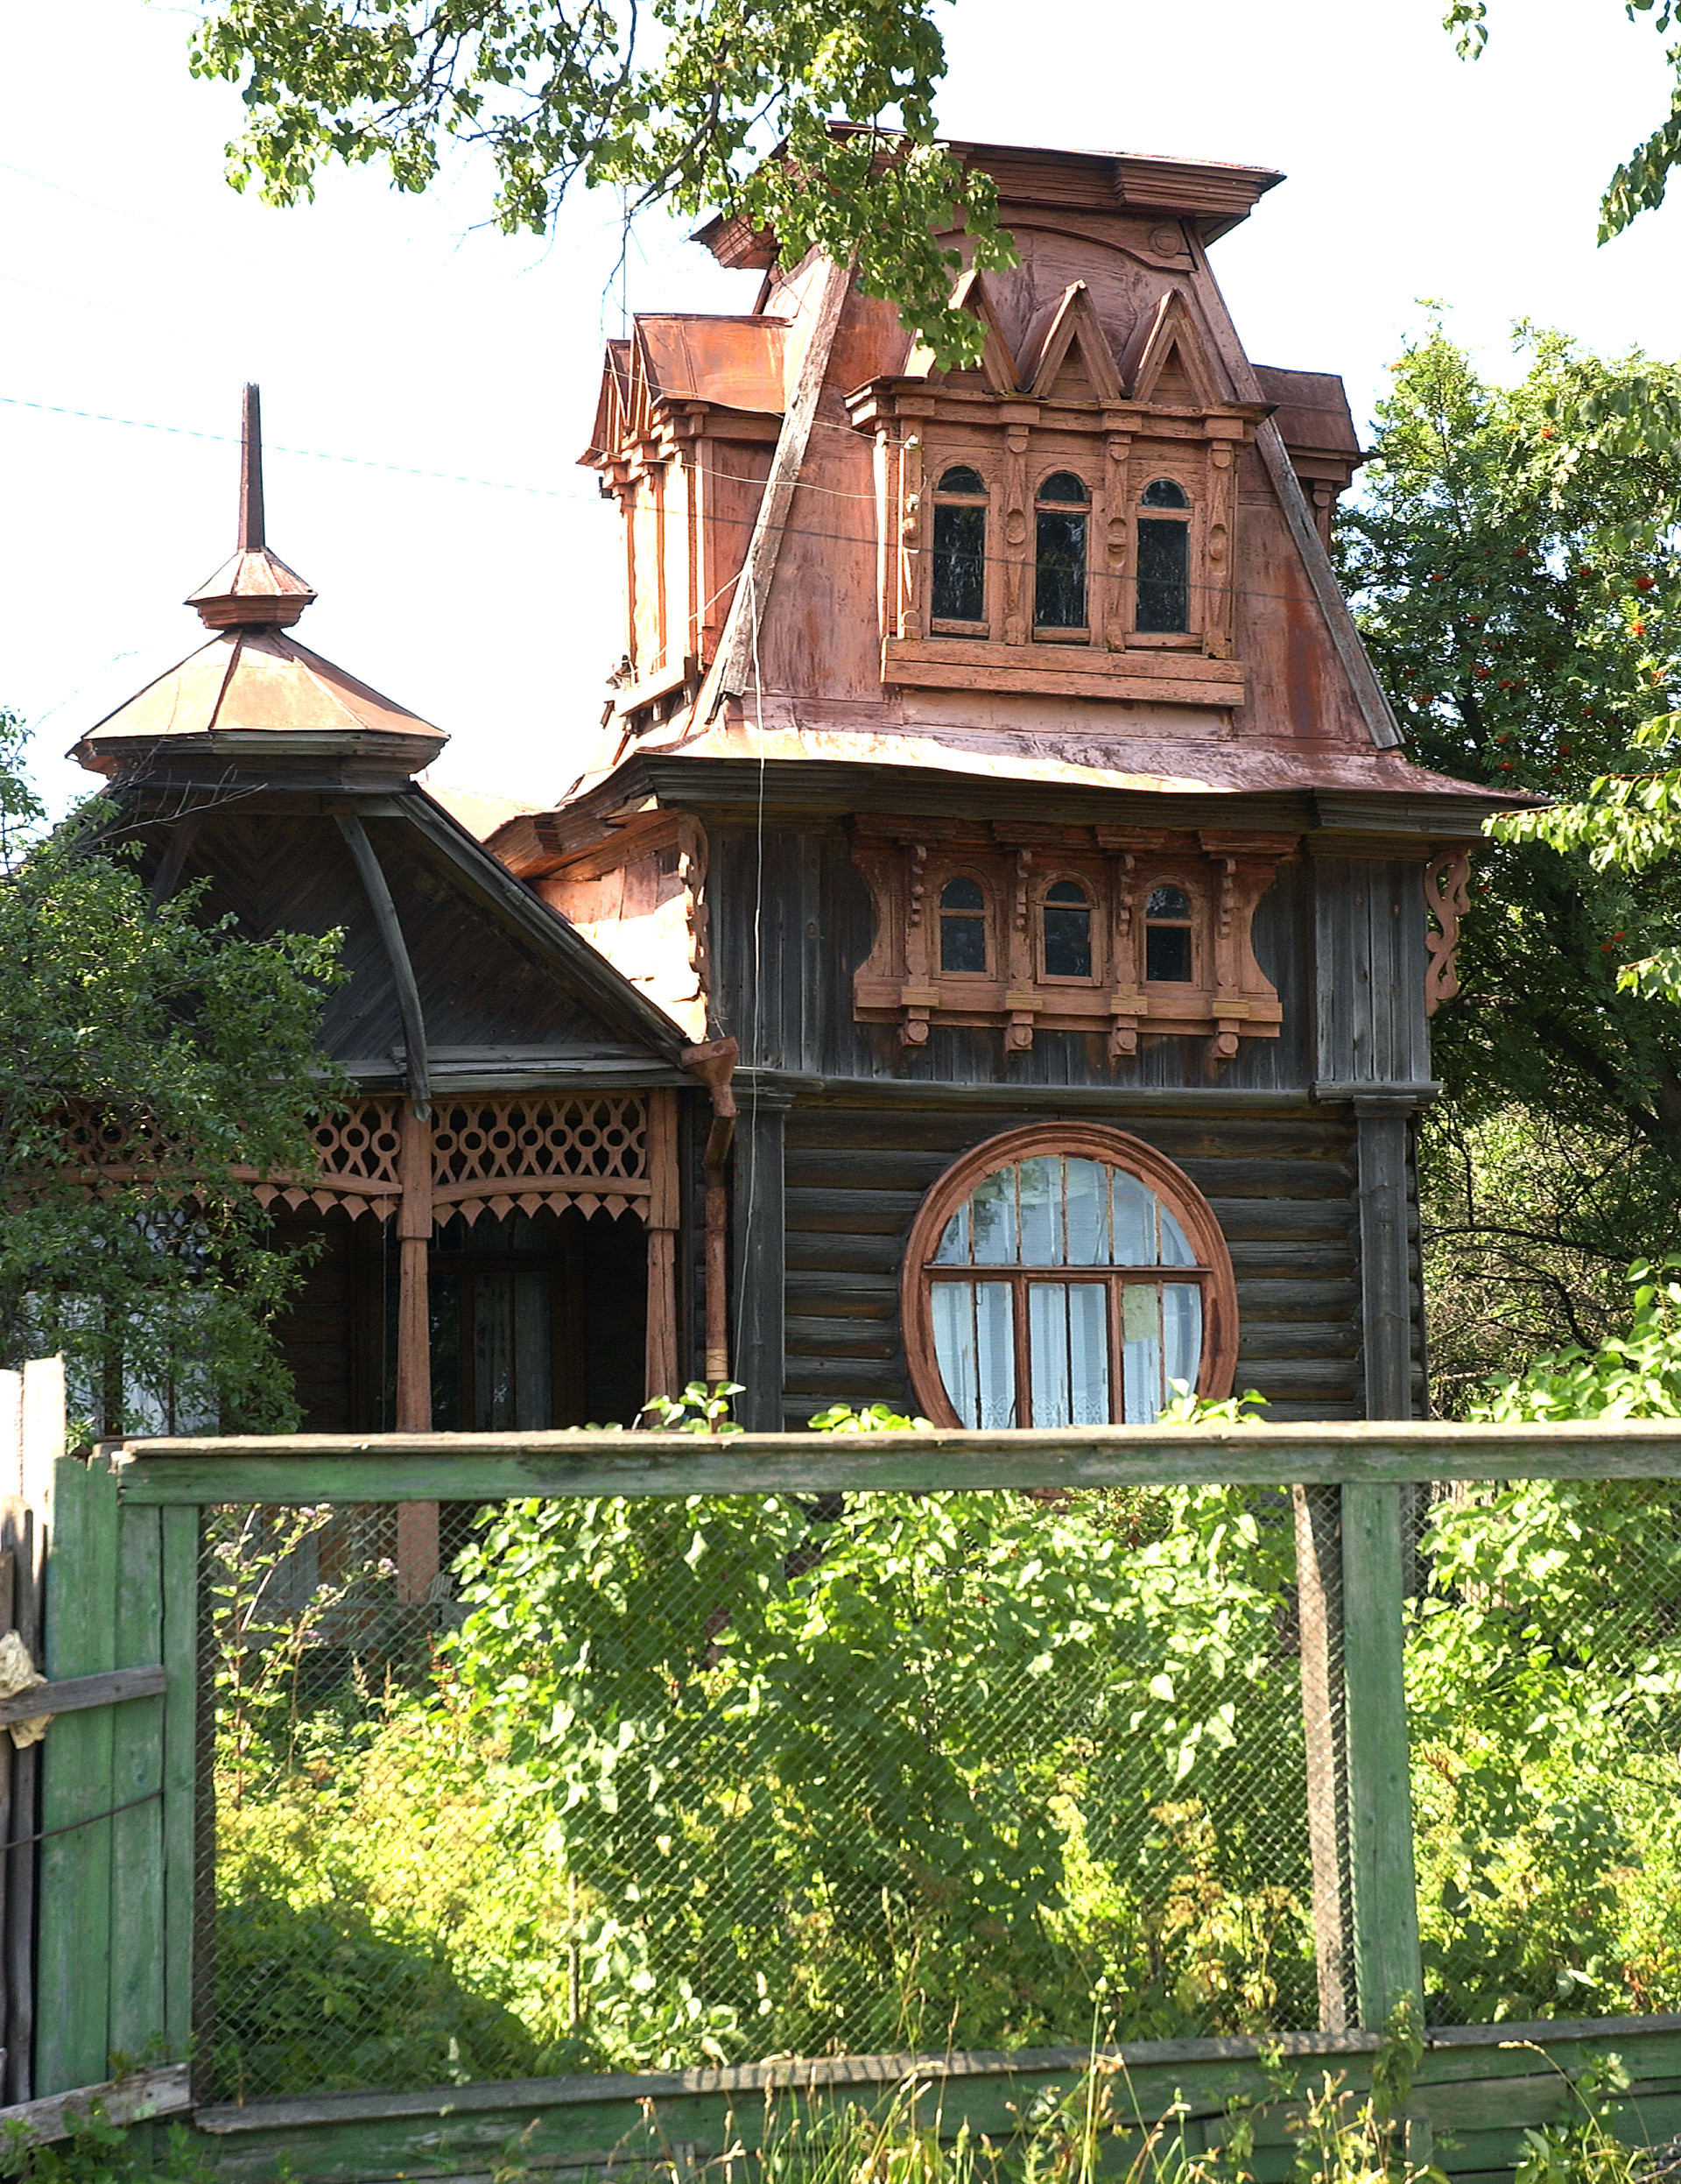 The most popular sights in Kimry are the beautiful and unique Art Nouveau wooden mansions.